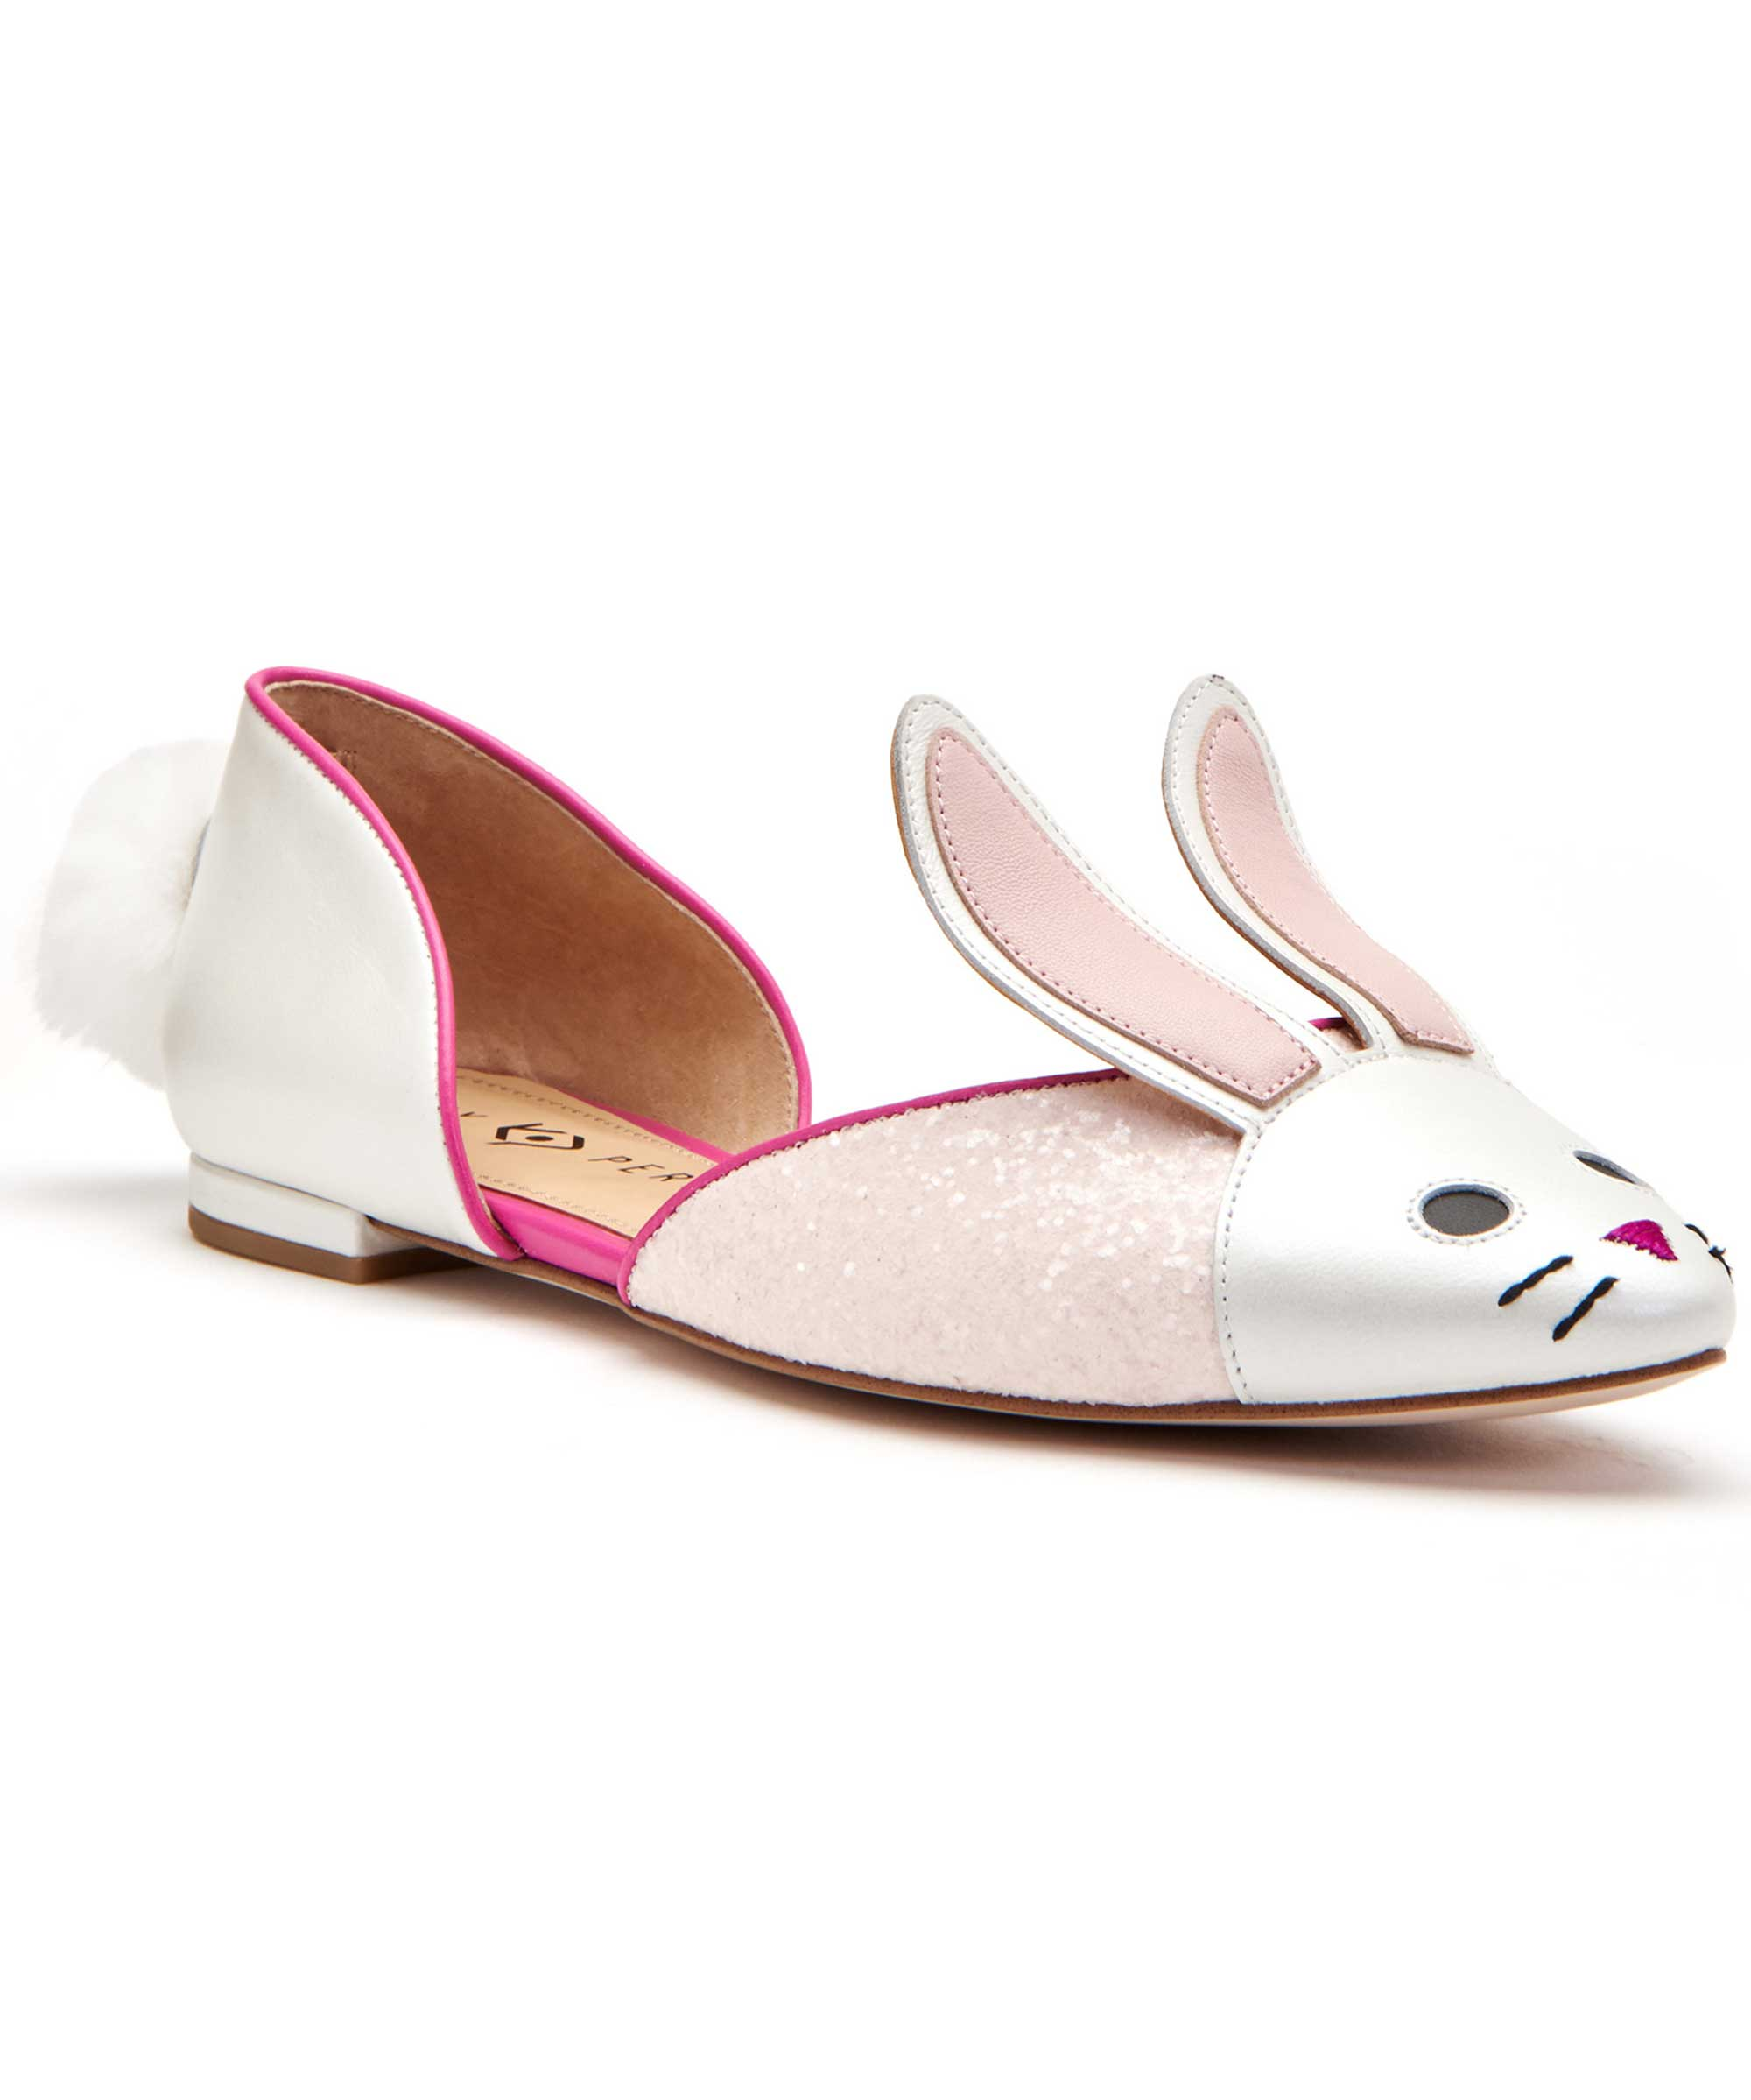 Katy Perry Footwear Shop Now - Hillary Clinton Shoes Katy Perry Shoes